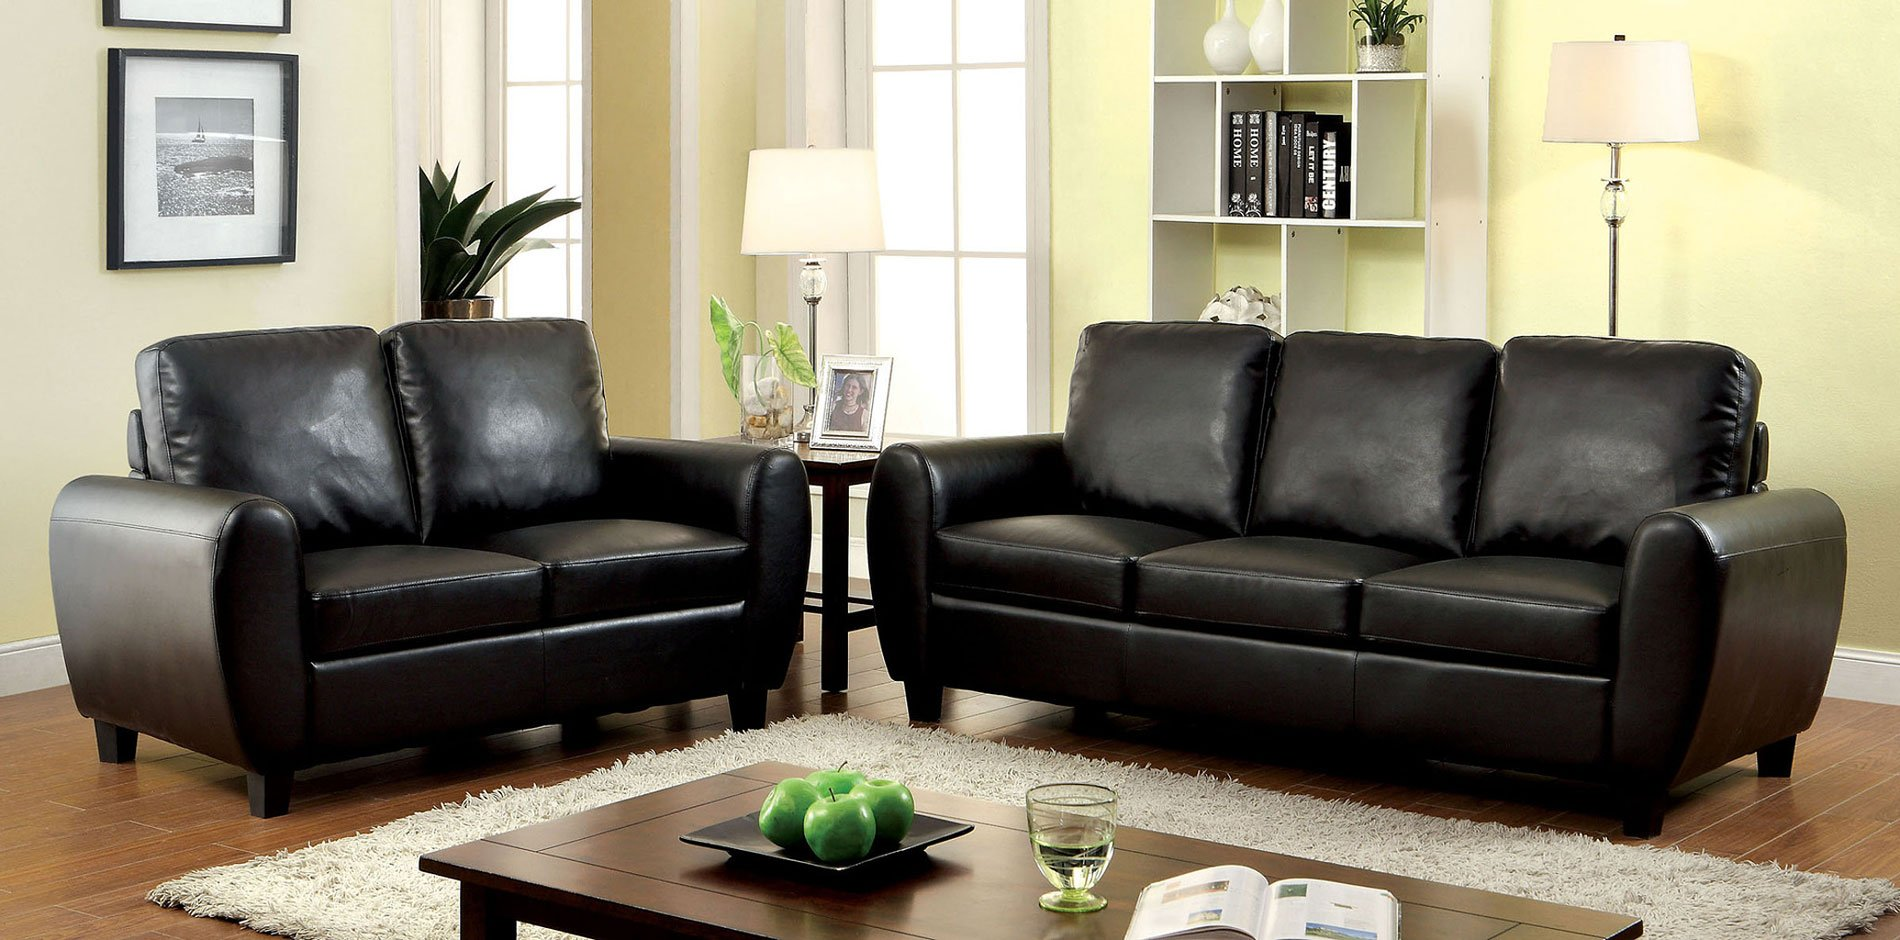 Hatton Living Room Set (Black)